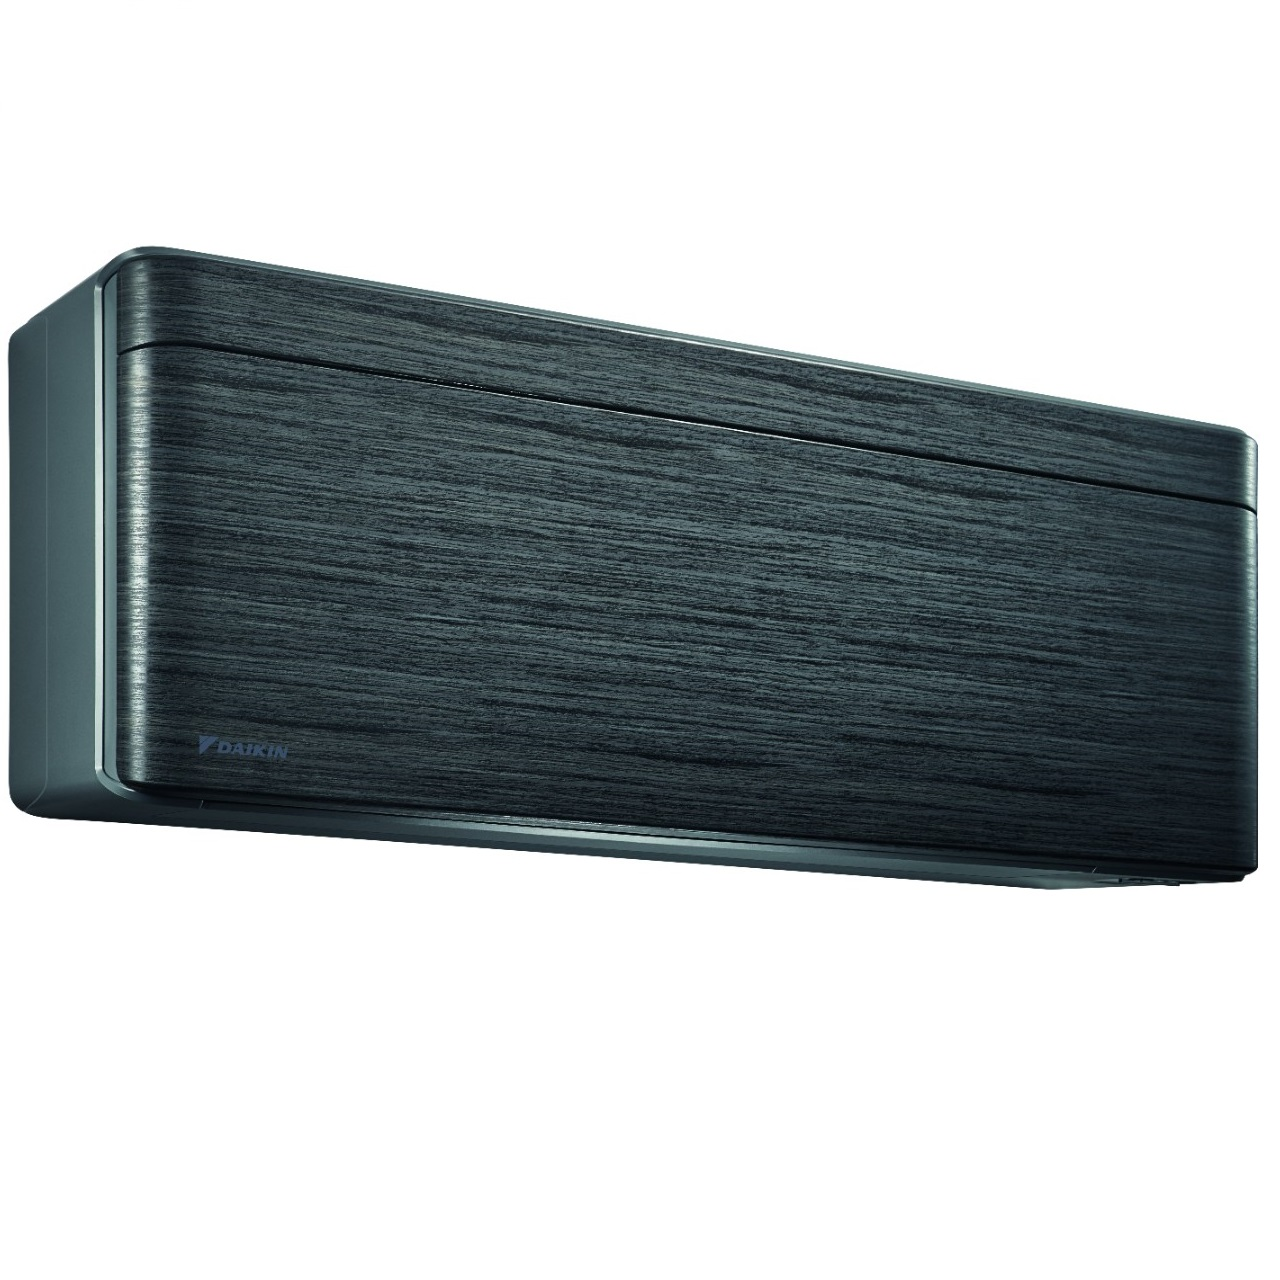 Daikin klima uređaj FTXA25AT/RXA25A STYLISH BLACKWOOD - Inelektronik